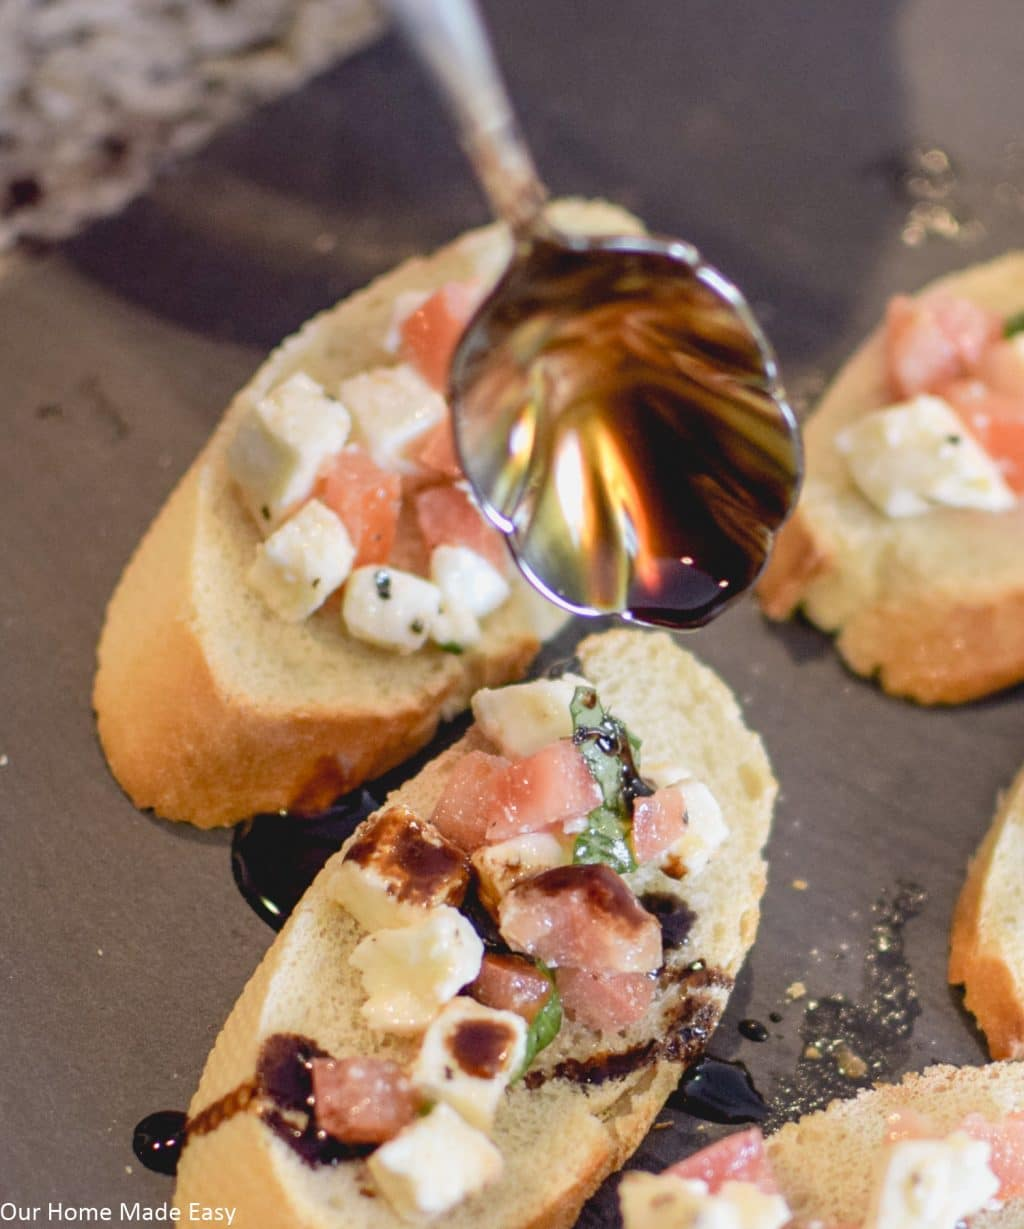 This super easy balsamic caprese bruschetta recipe is the BEST appetizer! Not only is it super quick to make, but it tastes so great, too